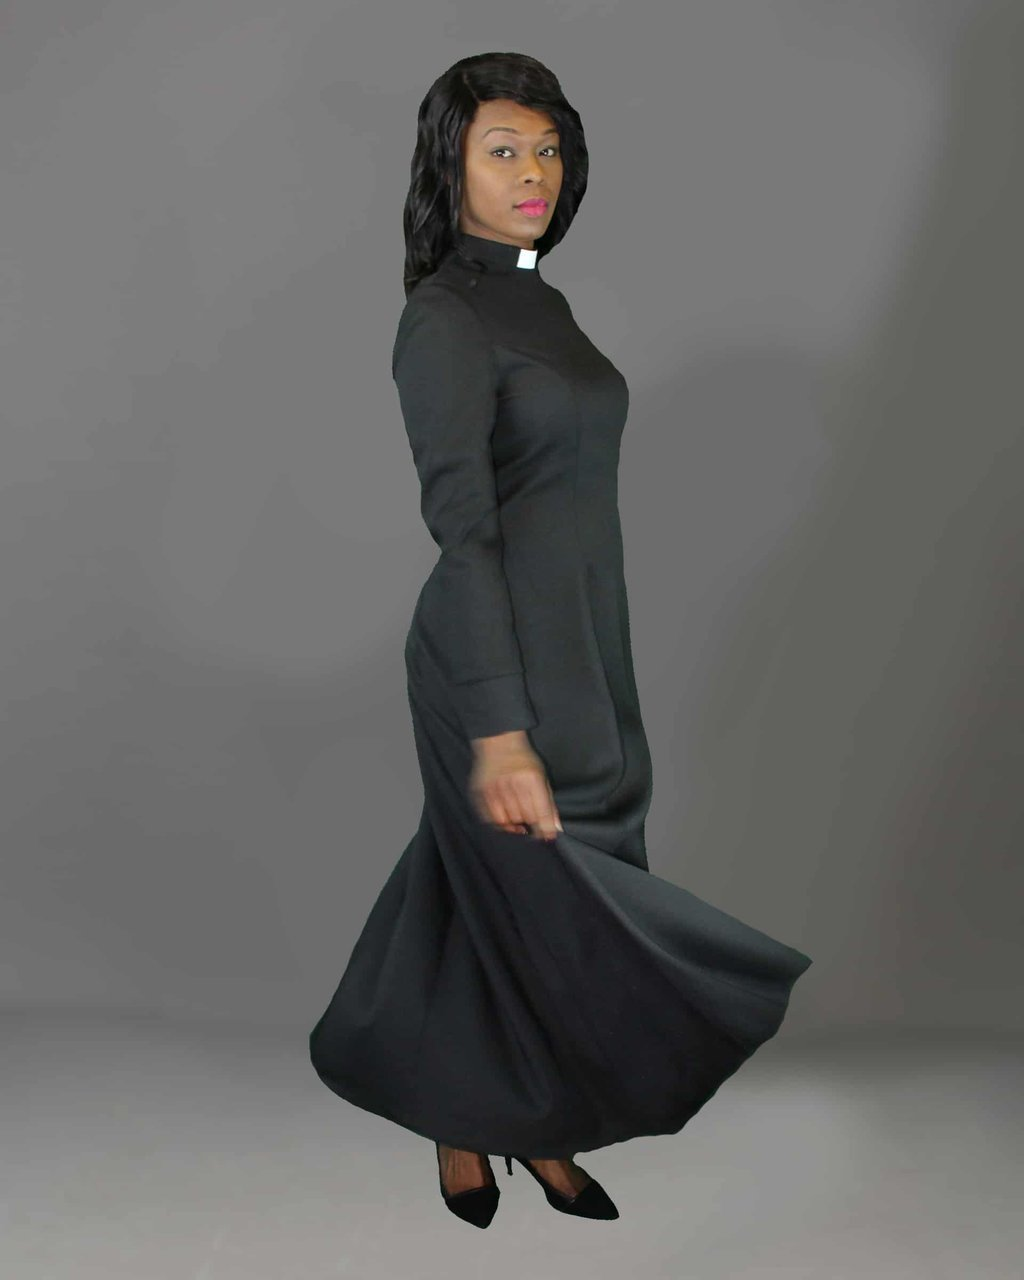 Full Length Clergy Dress With Full Length Wall Mirror Storage